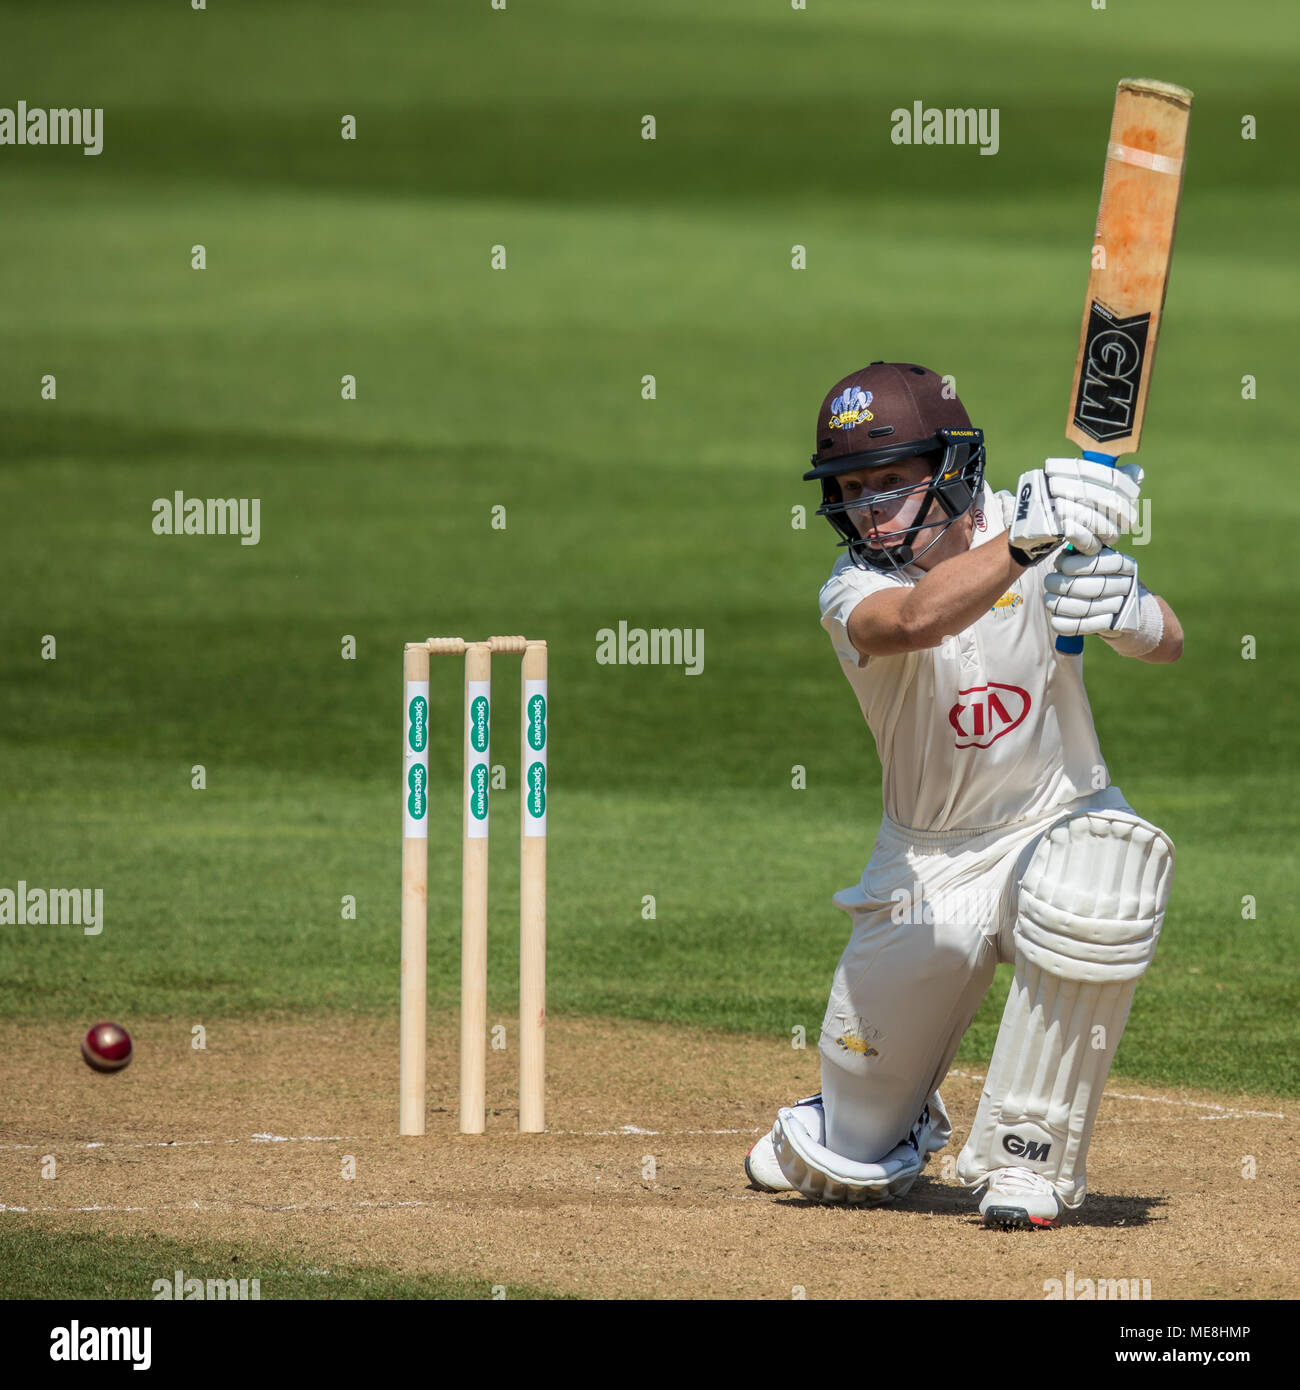 London,UK. 22 April 2018. Ollie Pope batting for Surrey against Hampshire on day  three of the Specsavers County Championship game at the Oval. David Rowe/Alamy Live News Stock Photo